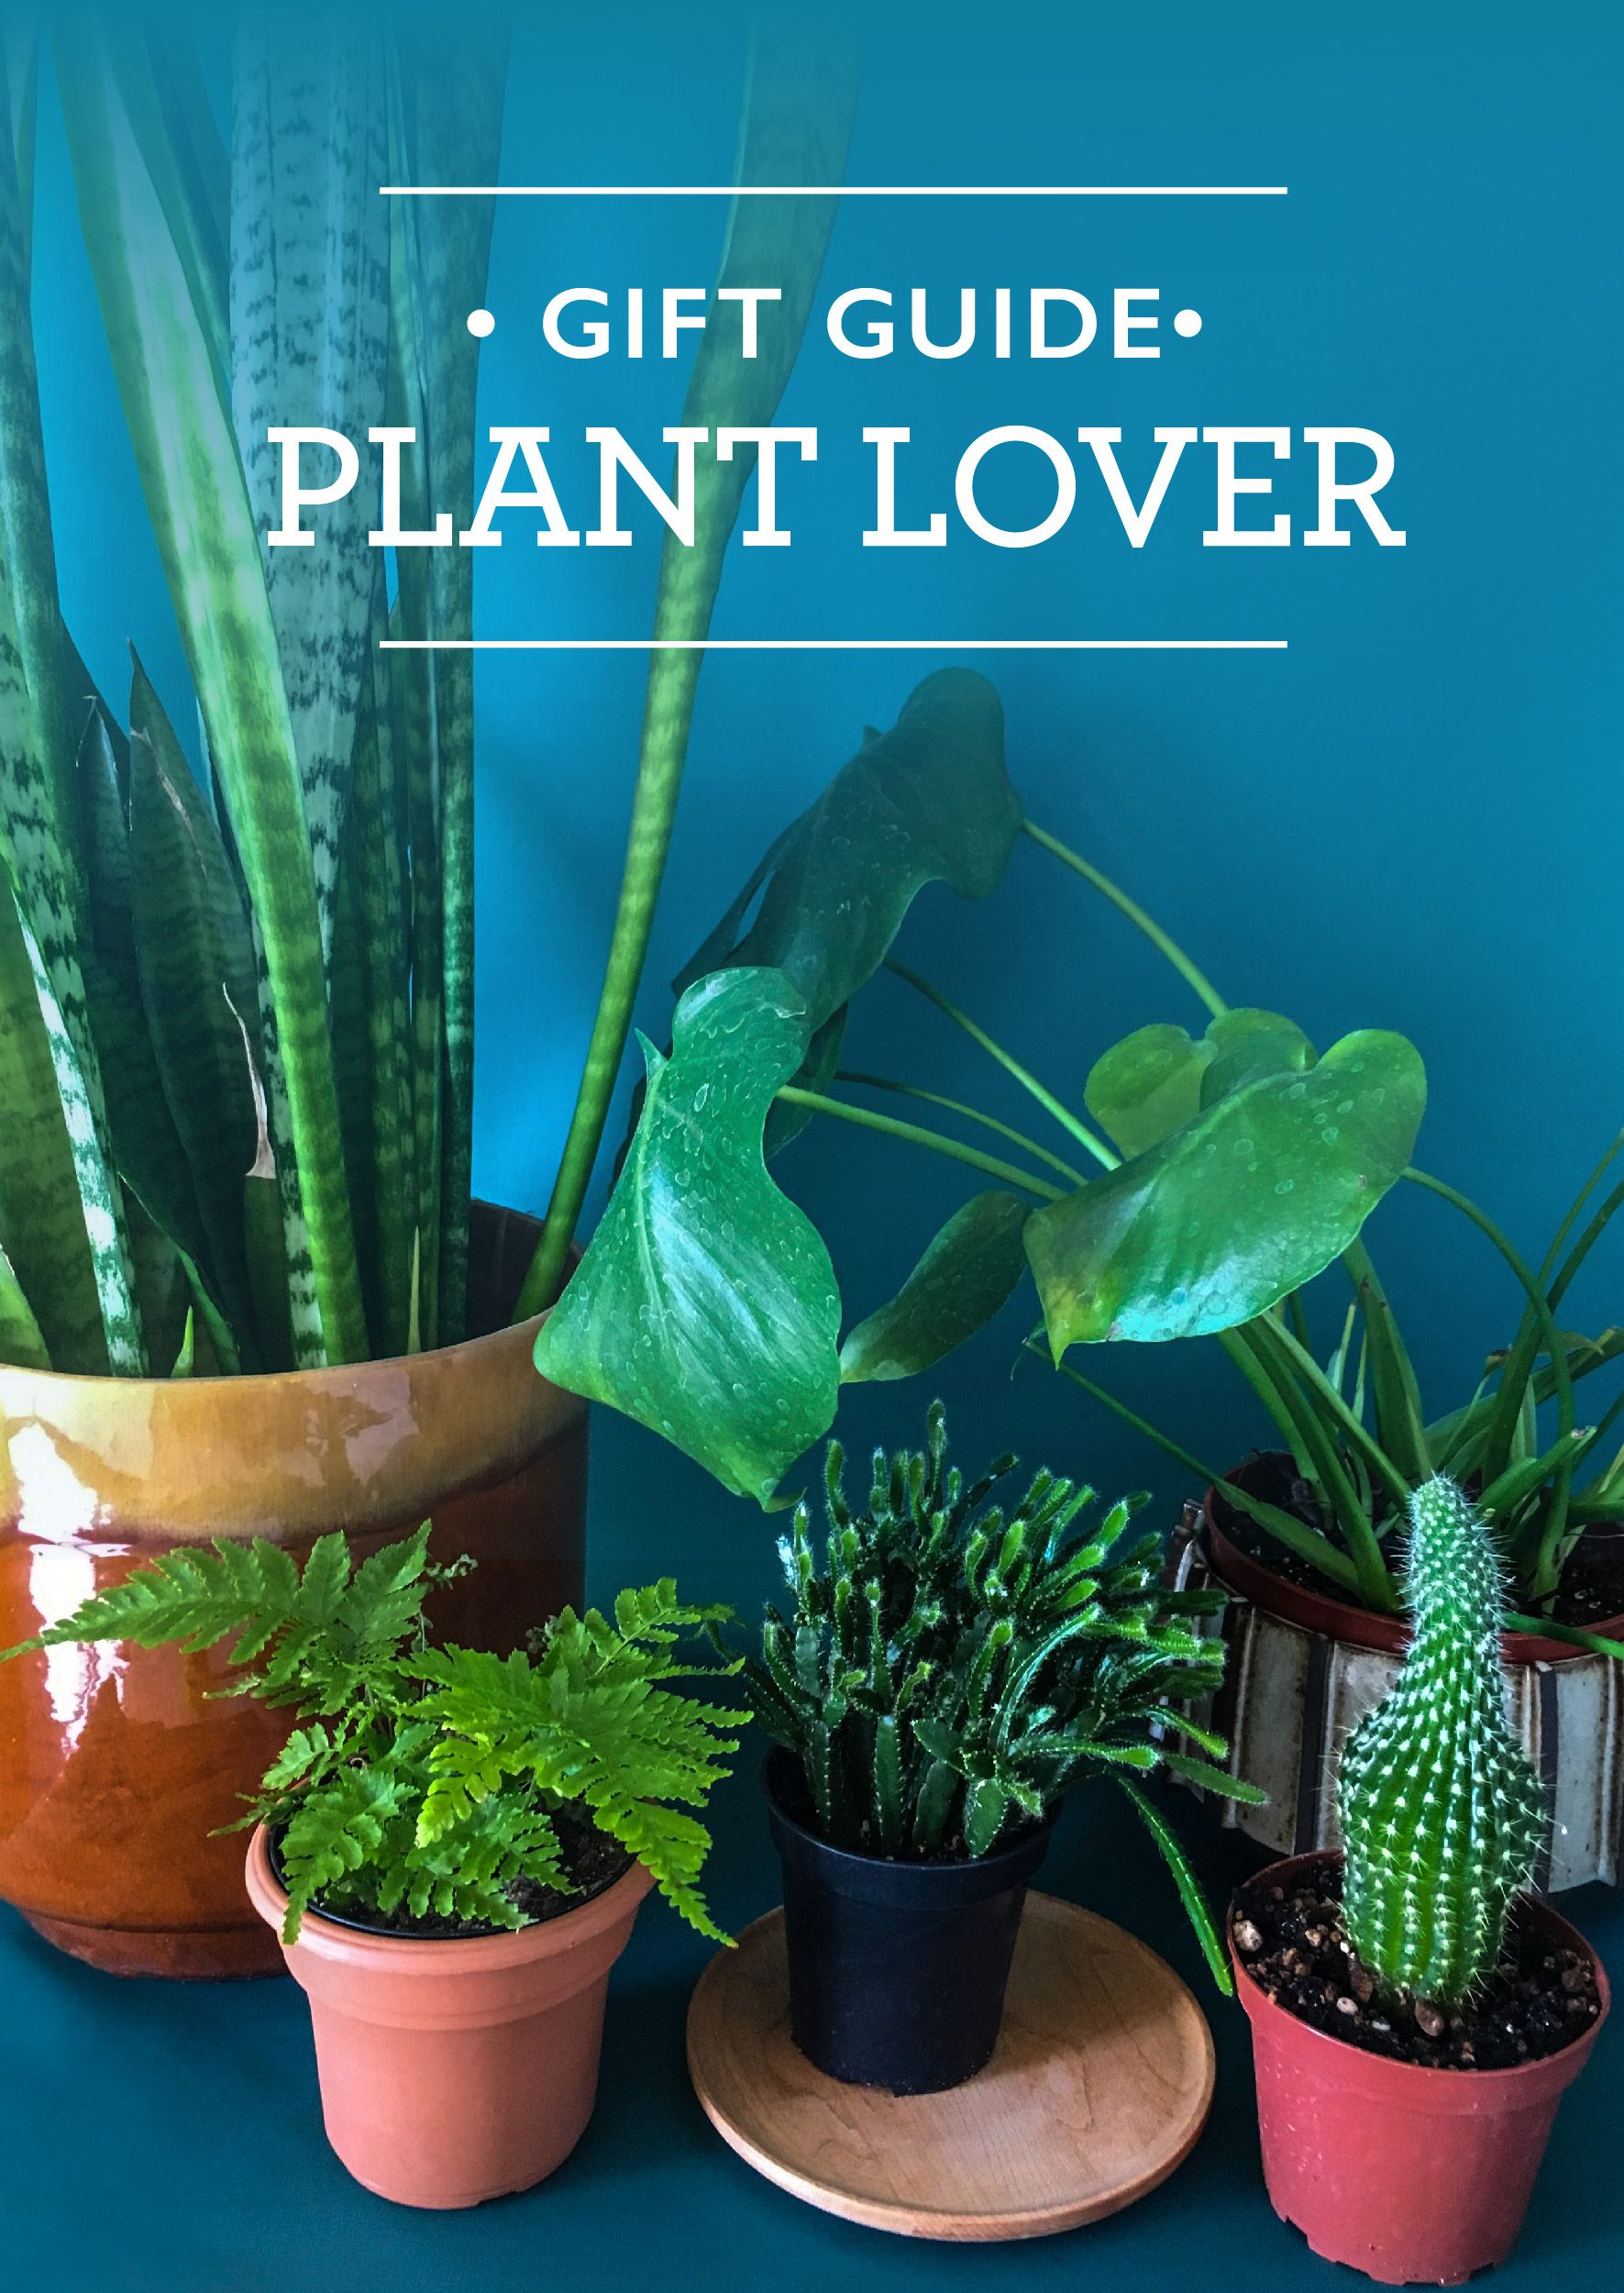 Gift ideas for the plant enthusiast